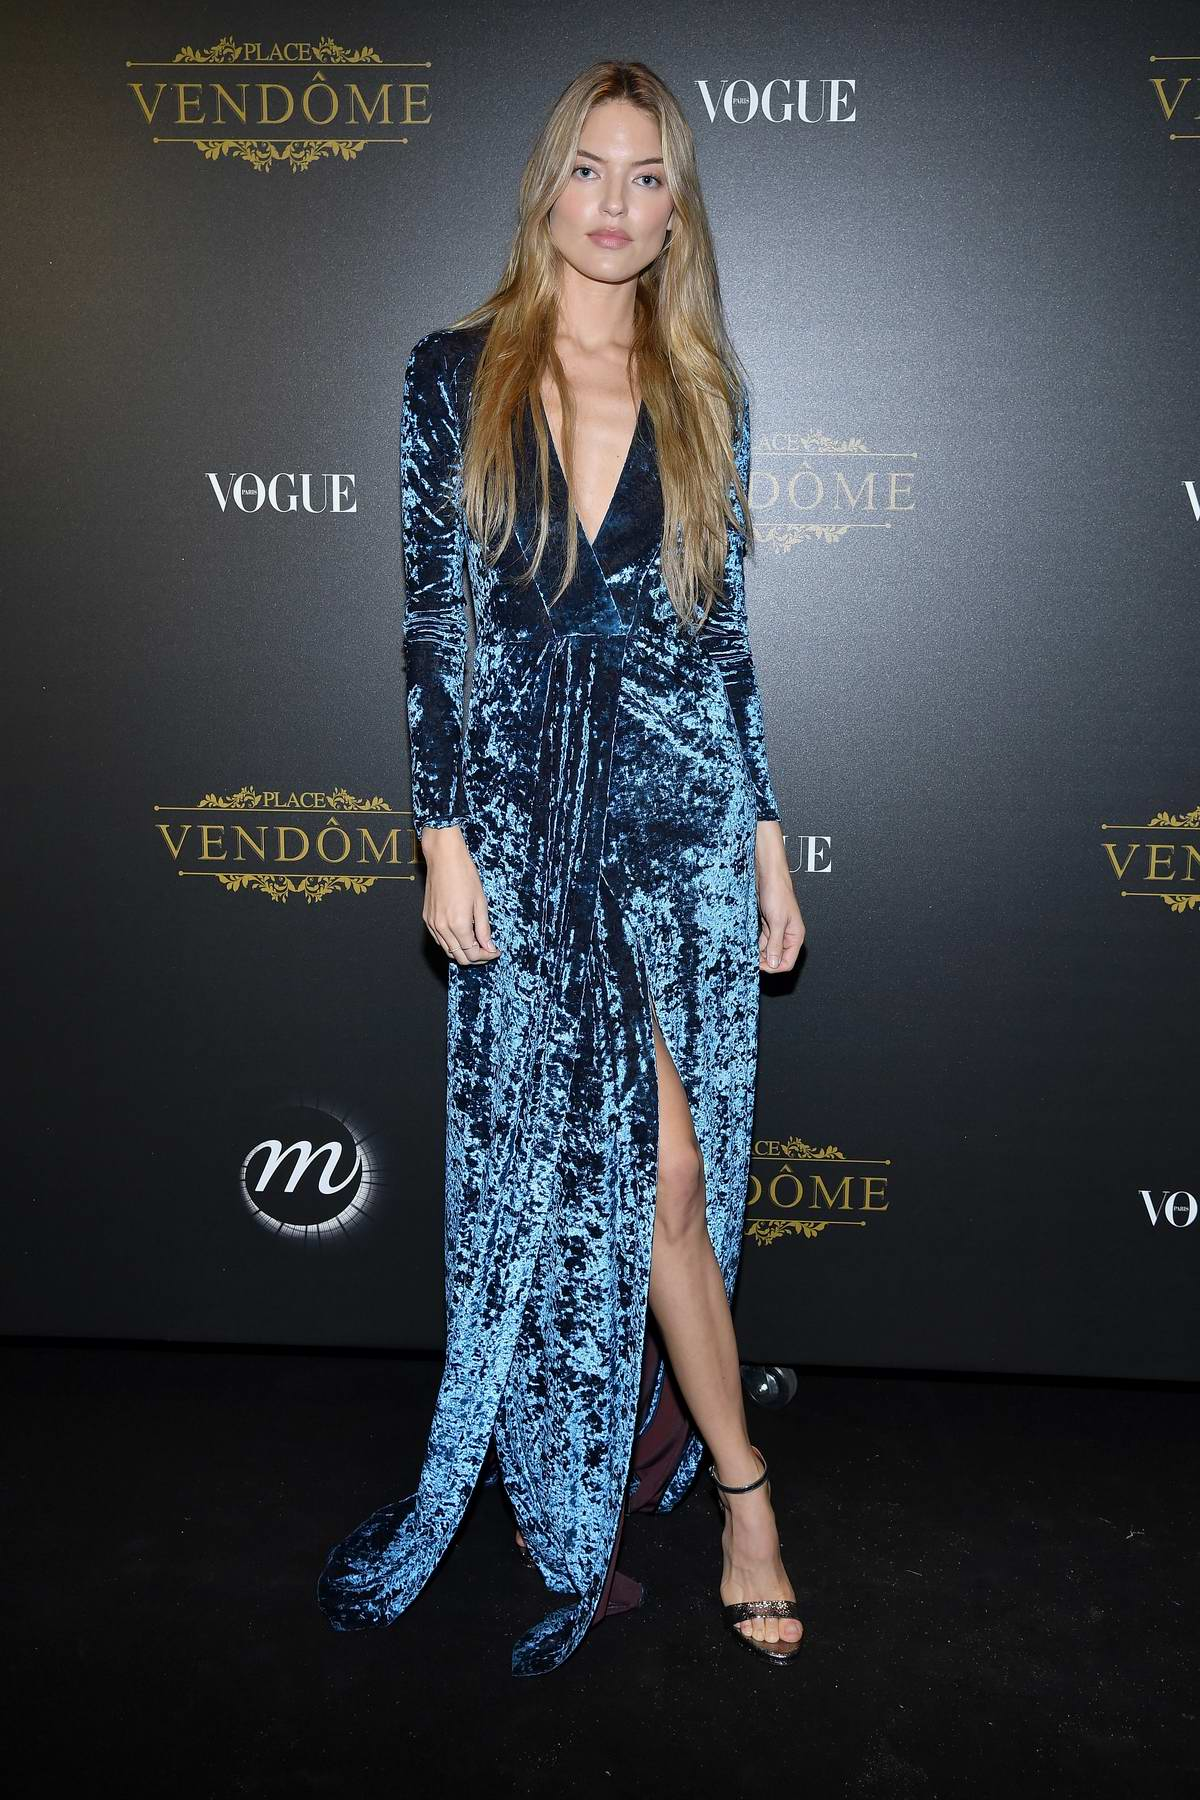 Martha Hunt attends the Vogue x Irving Penn party during Paris Fashion Week SS 2020 in Paris, France